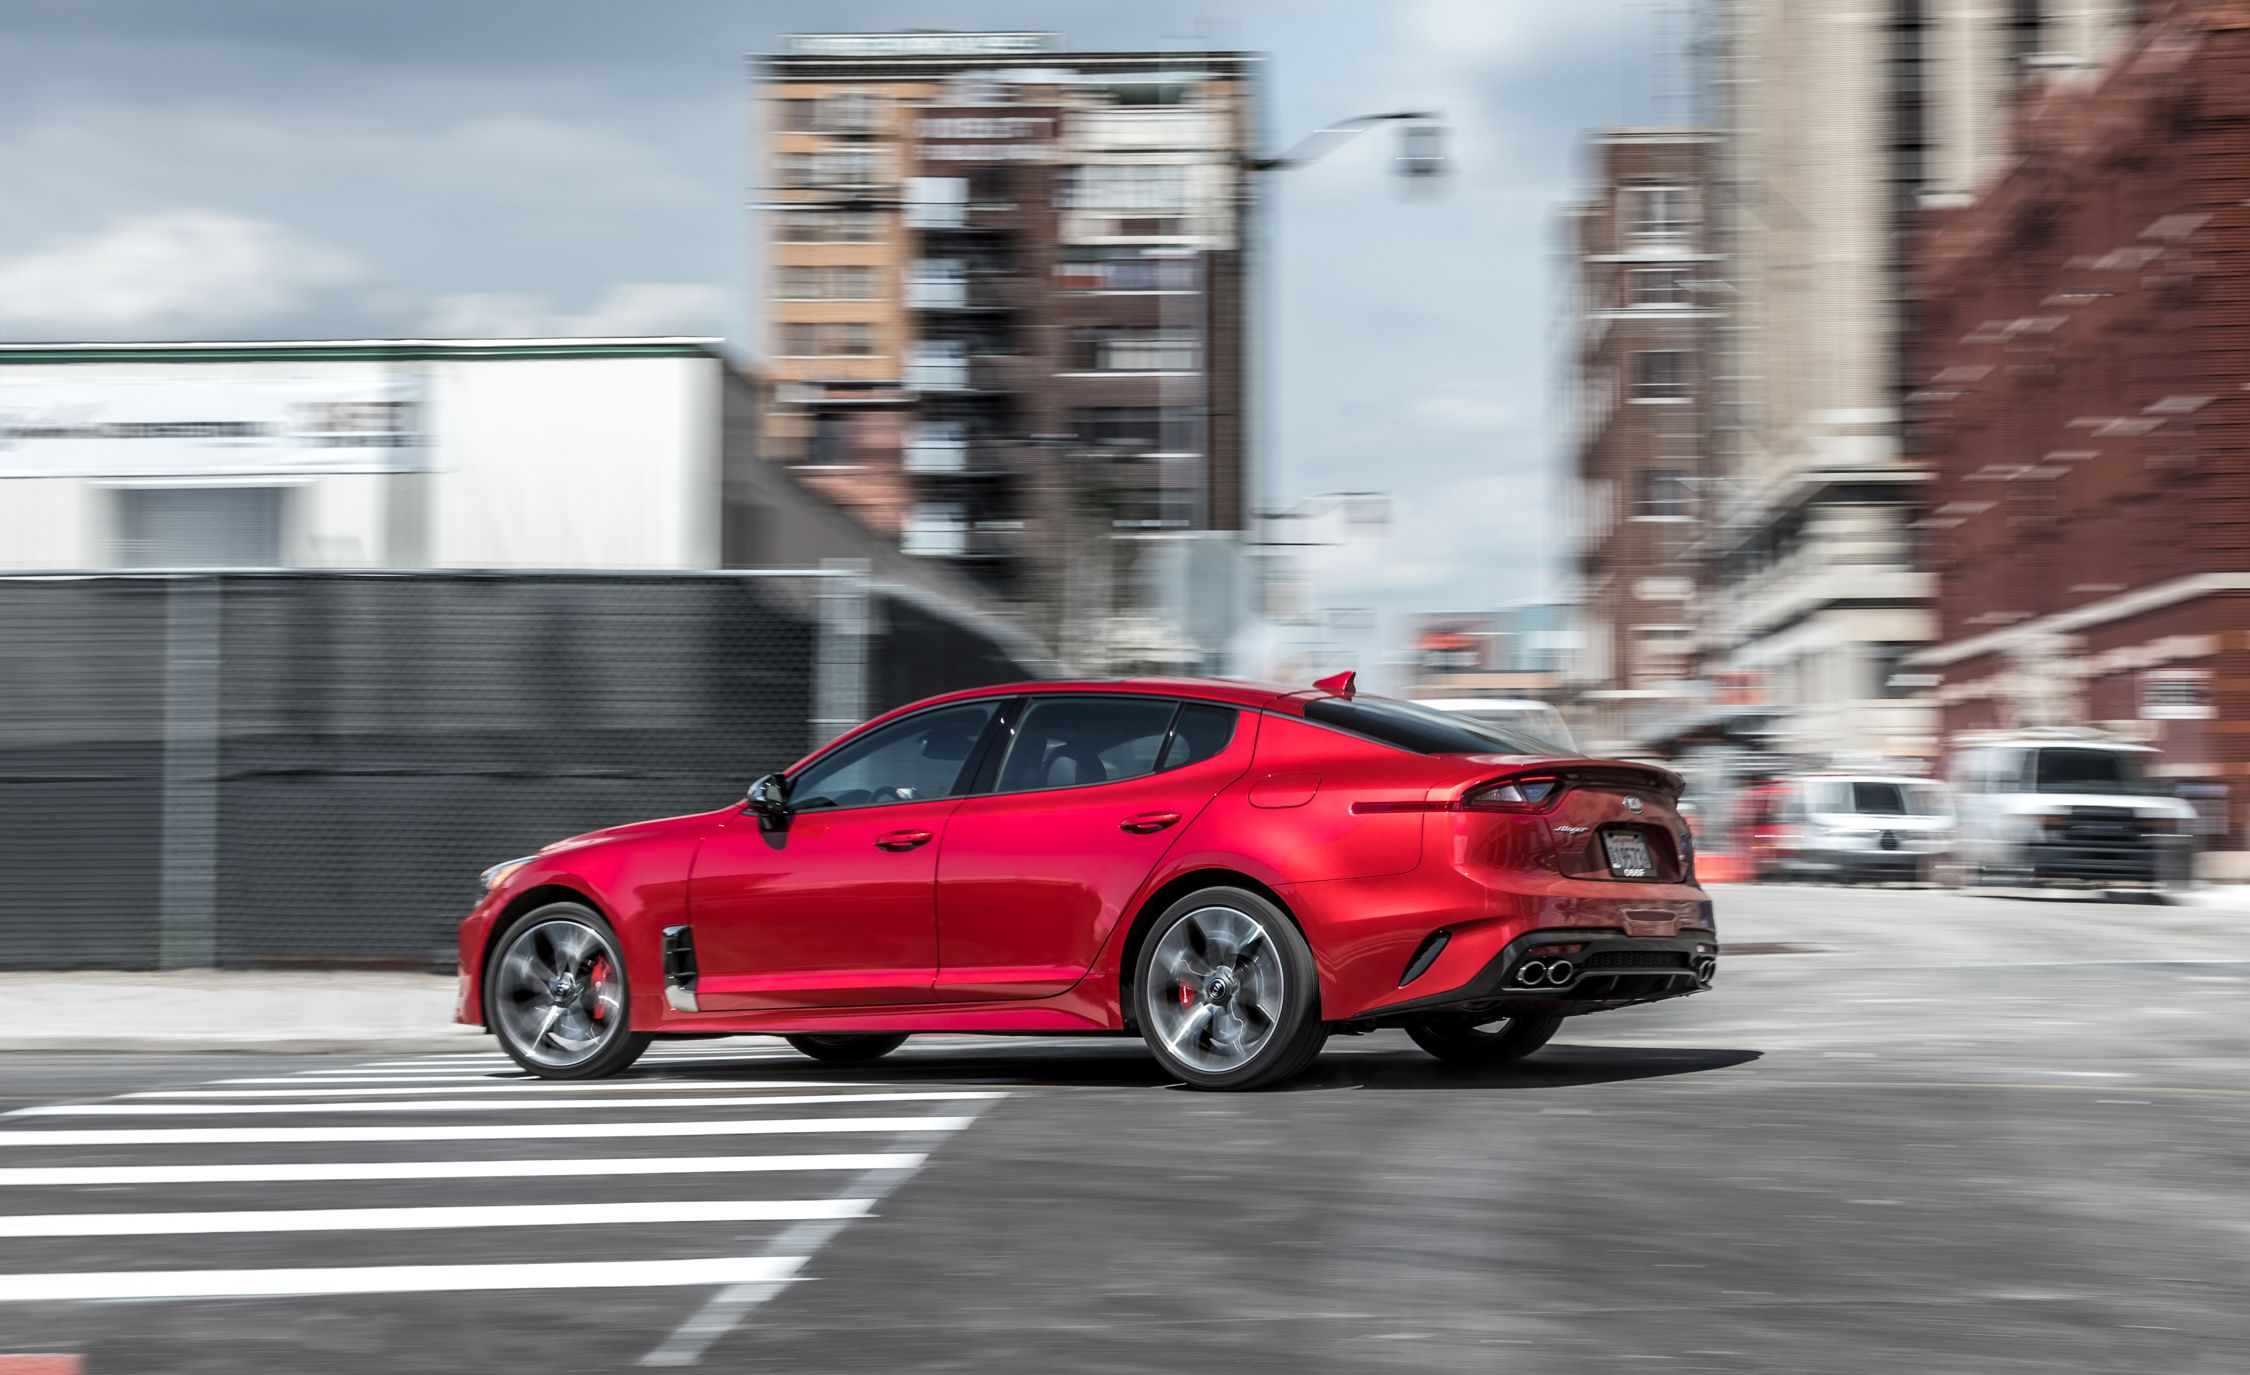 fastback eu stinger en press kia european sports home releases revealed to in car resouces media cart specification